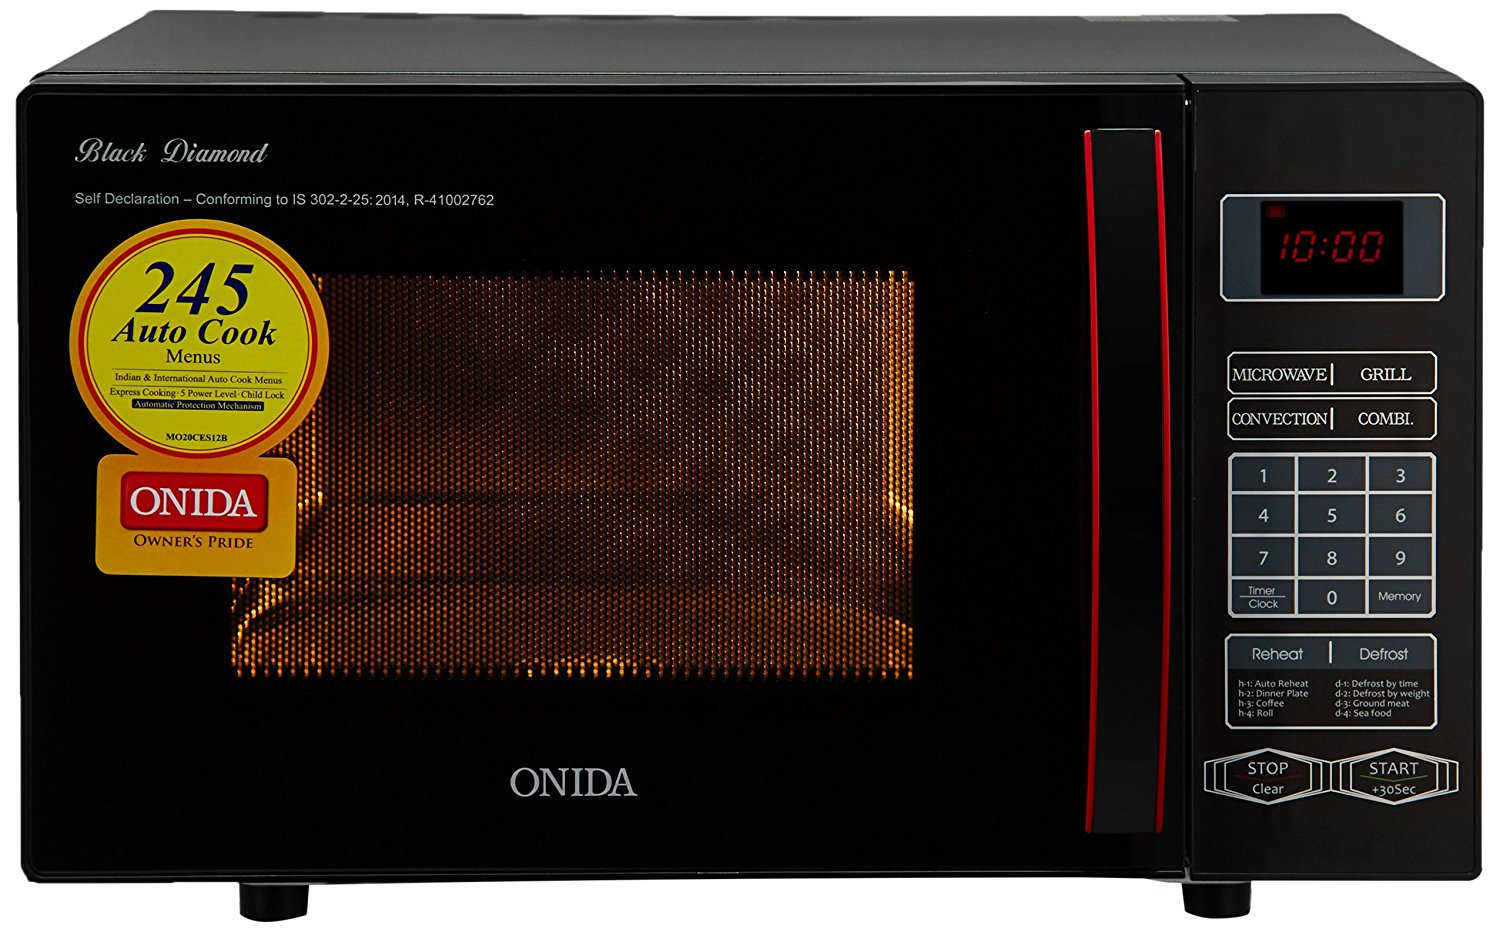 20 liters onida microwave oven - convection cooking